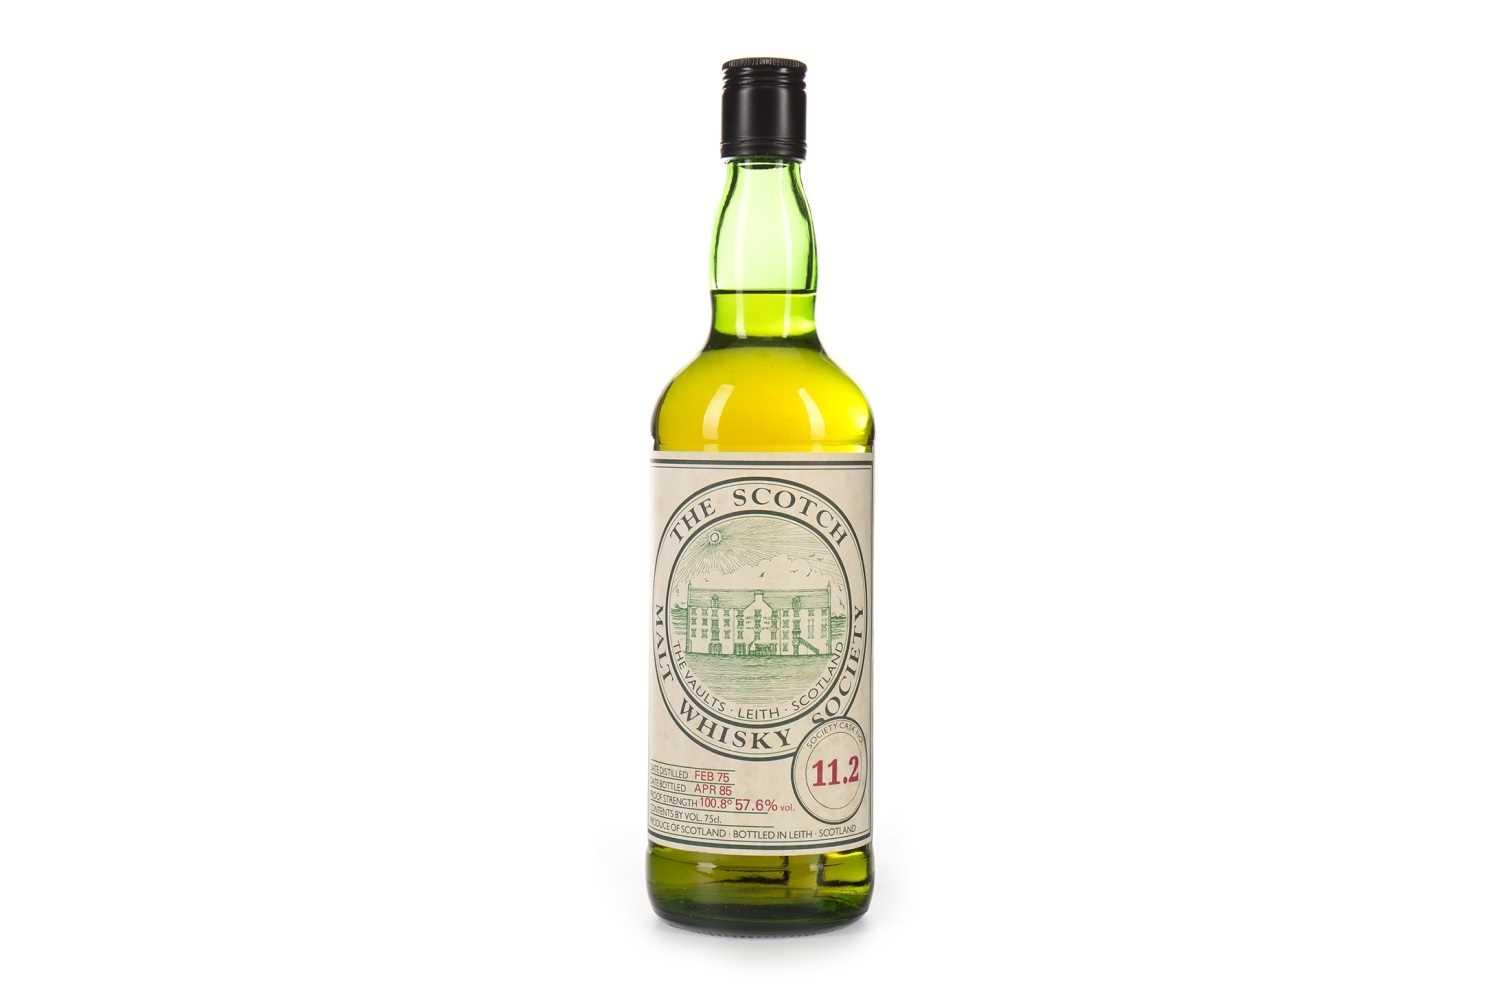 Lot 28-TOMATIN 1975 SMWS 11.2 AGED 10 YEARS